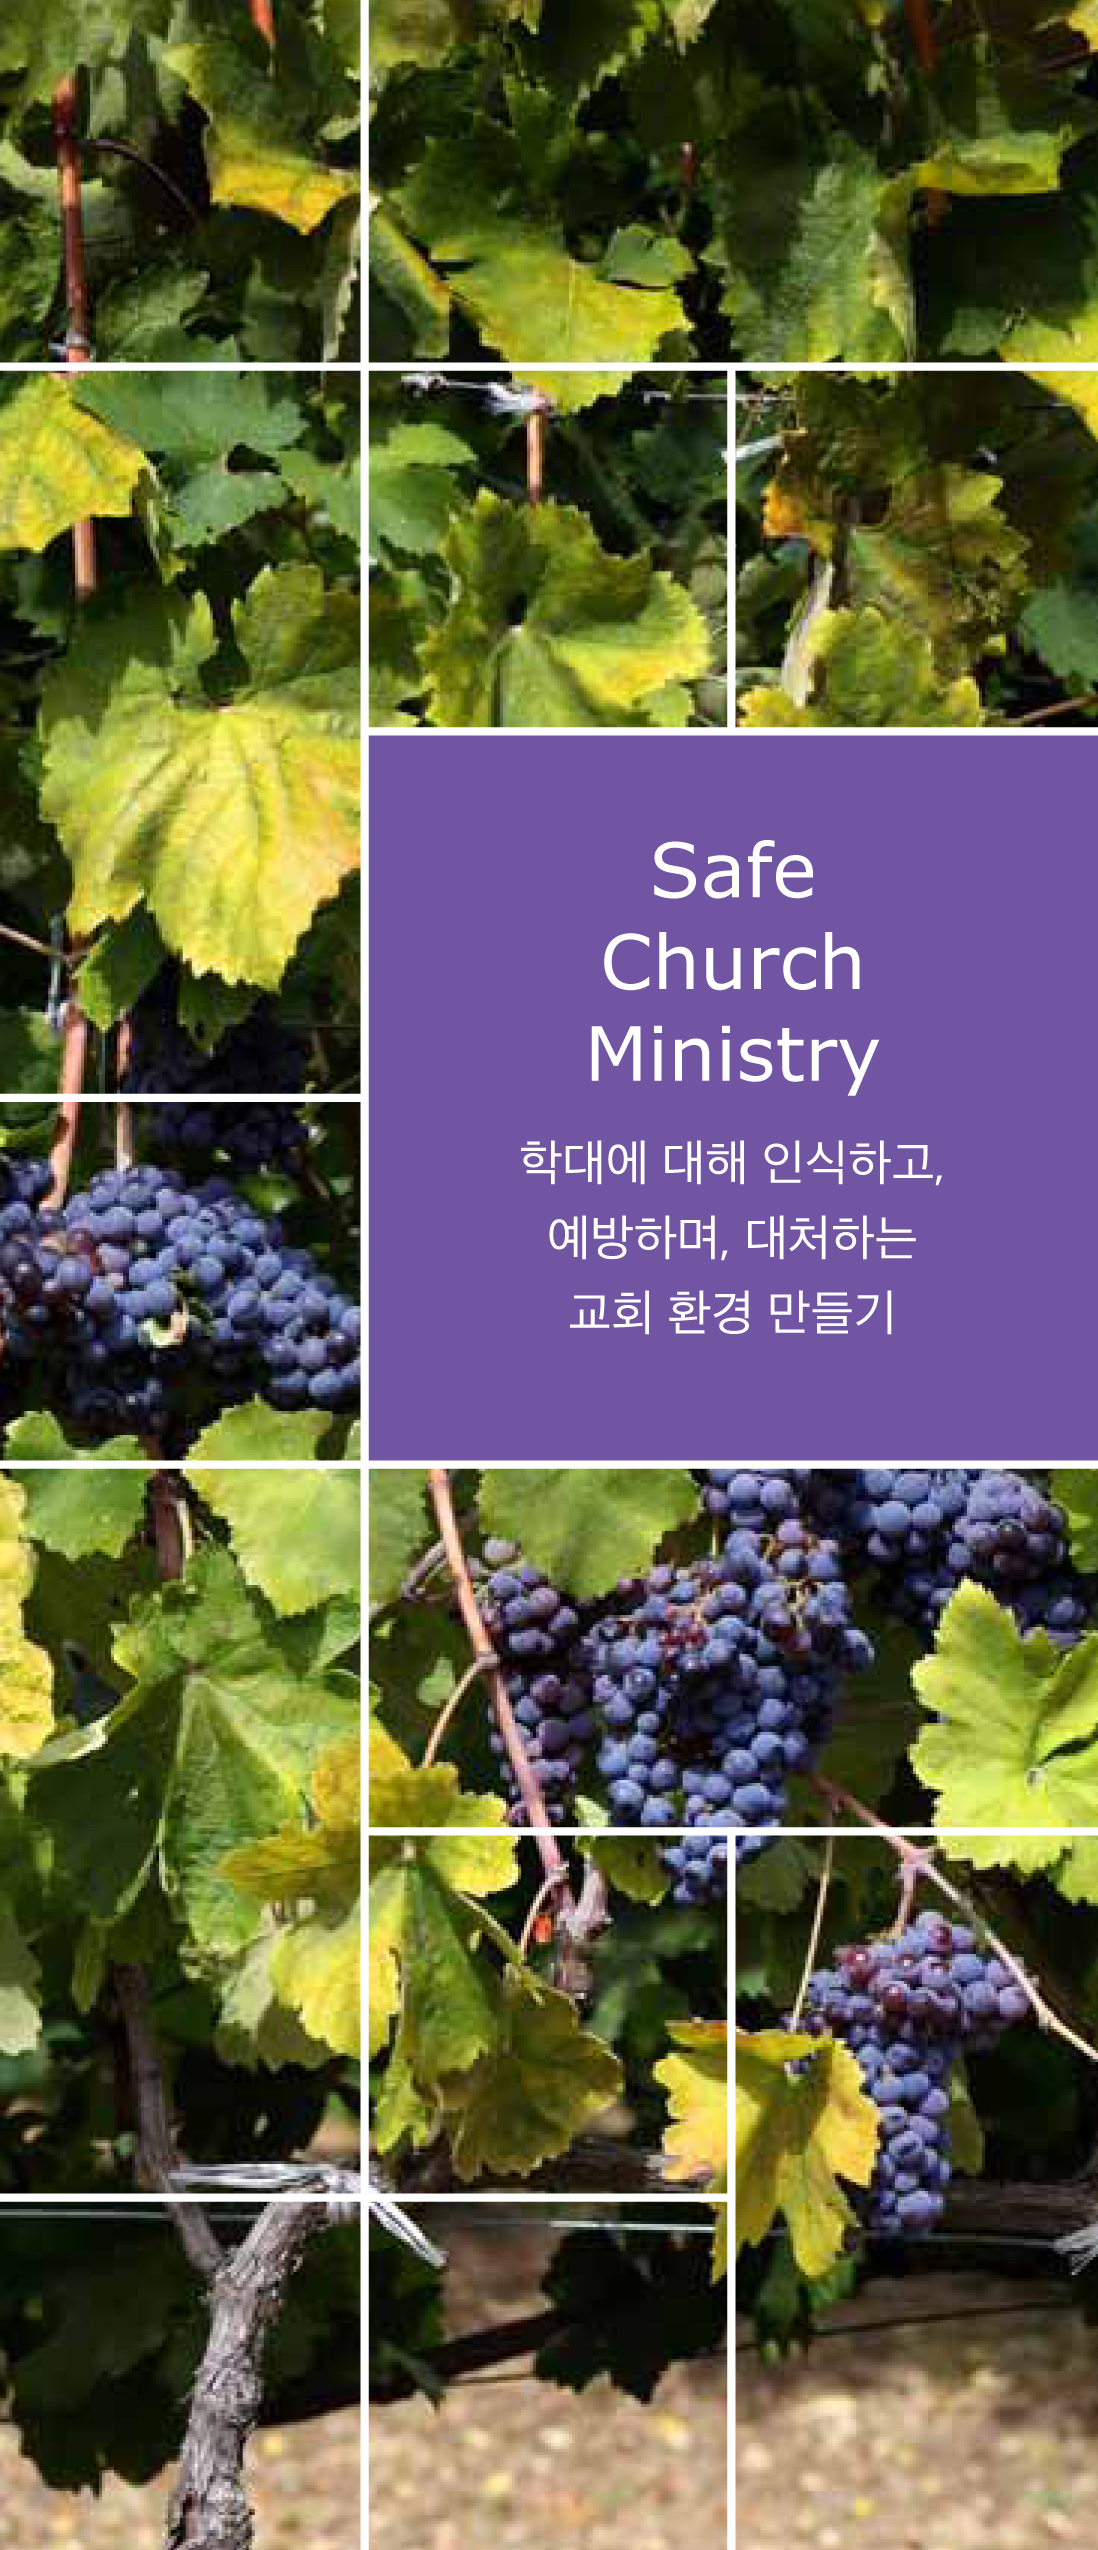 Safe Church Ministry Brochure (Korean)